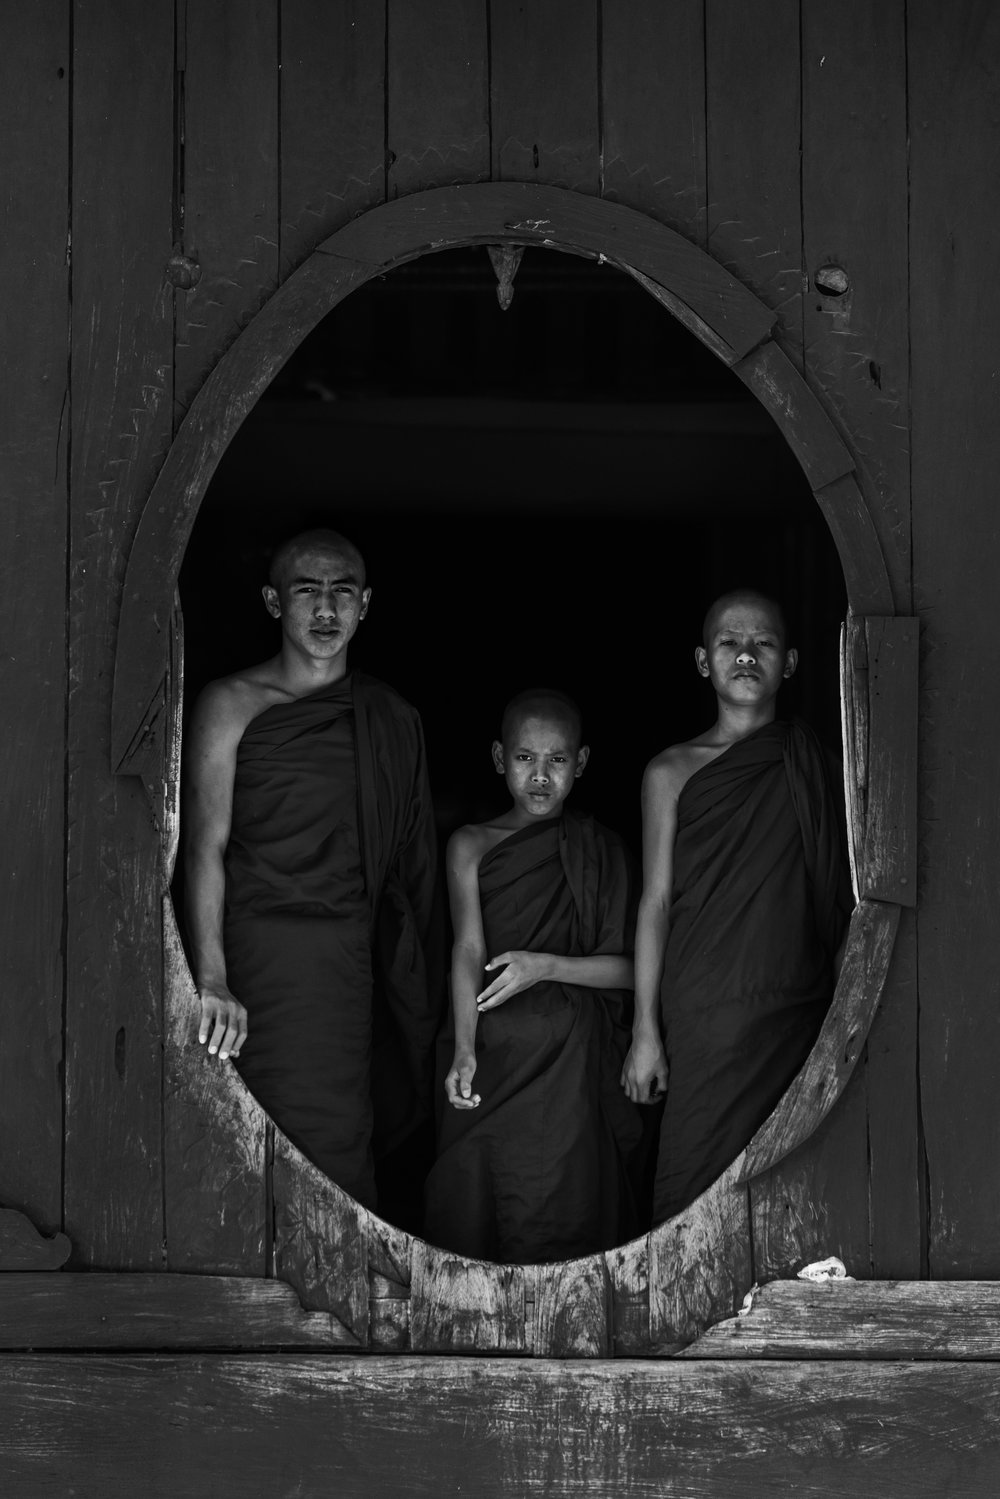 SANGHA, 2018 - MyanmarPhotograph on BW Ilford Pearl Finish with UV Protected Matte, on Anodized Aluminum50.8cm x 76.2cm(20in x 30in)